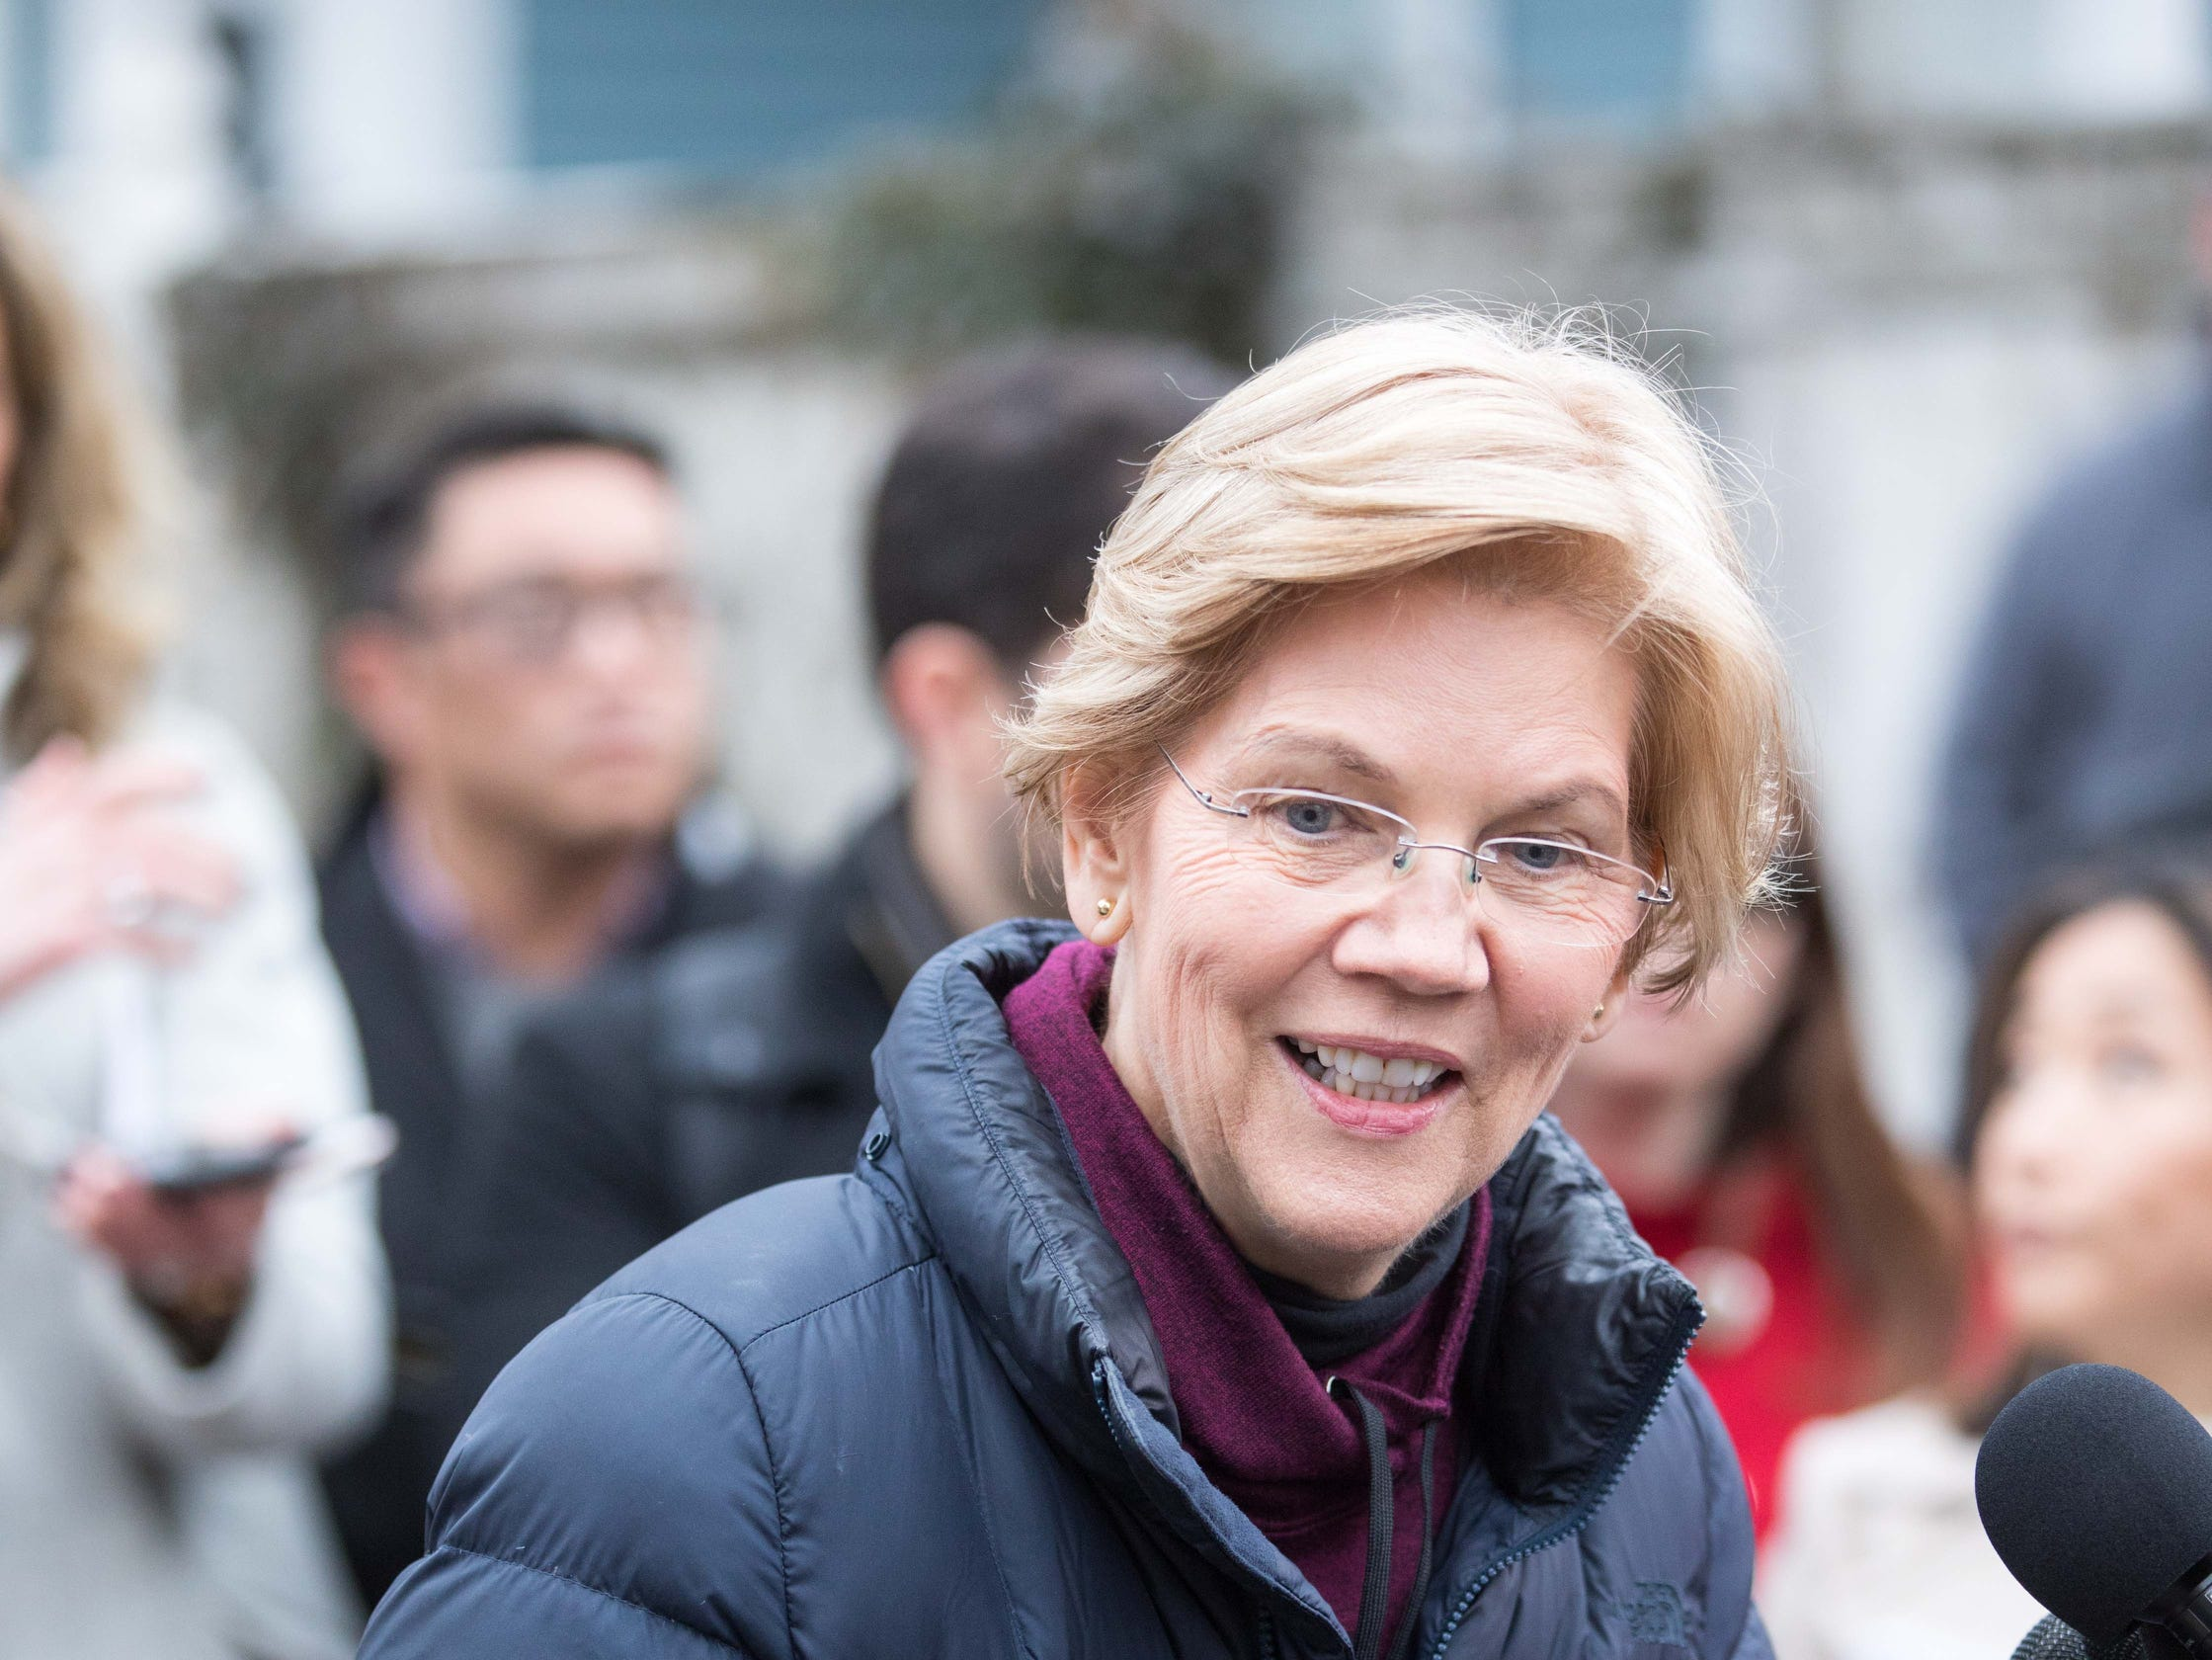 Sen. Elizabeth Warren (D-MA) took the first major step toward launching a widely anticipated campaign for the presidency, hoping her reputation as a populist fighter can help her navigate a Democratic field that could include nearly two dozen candidates.